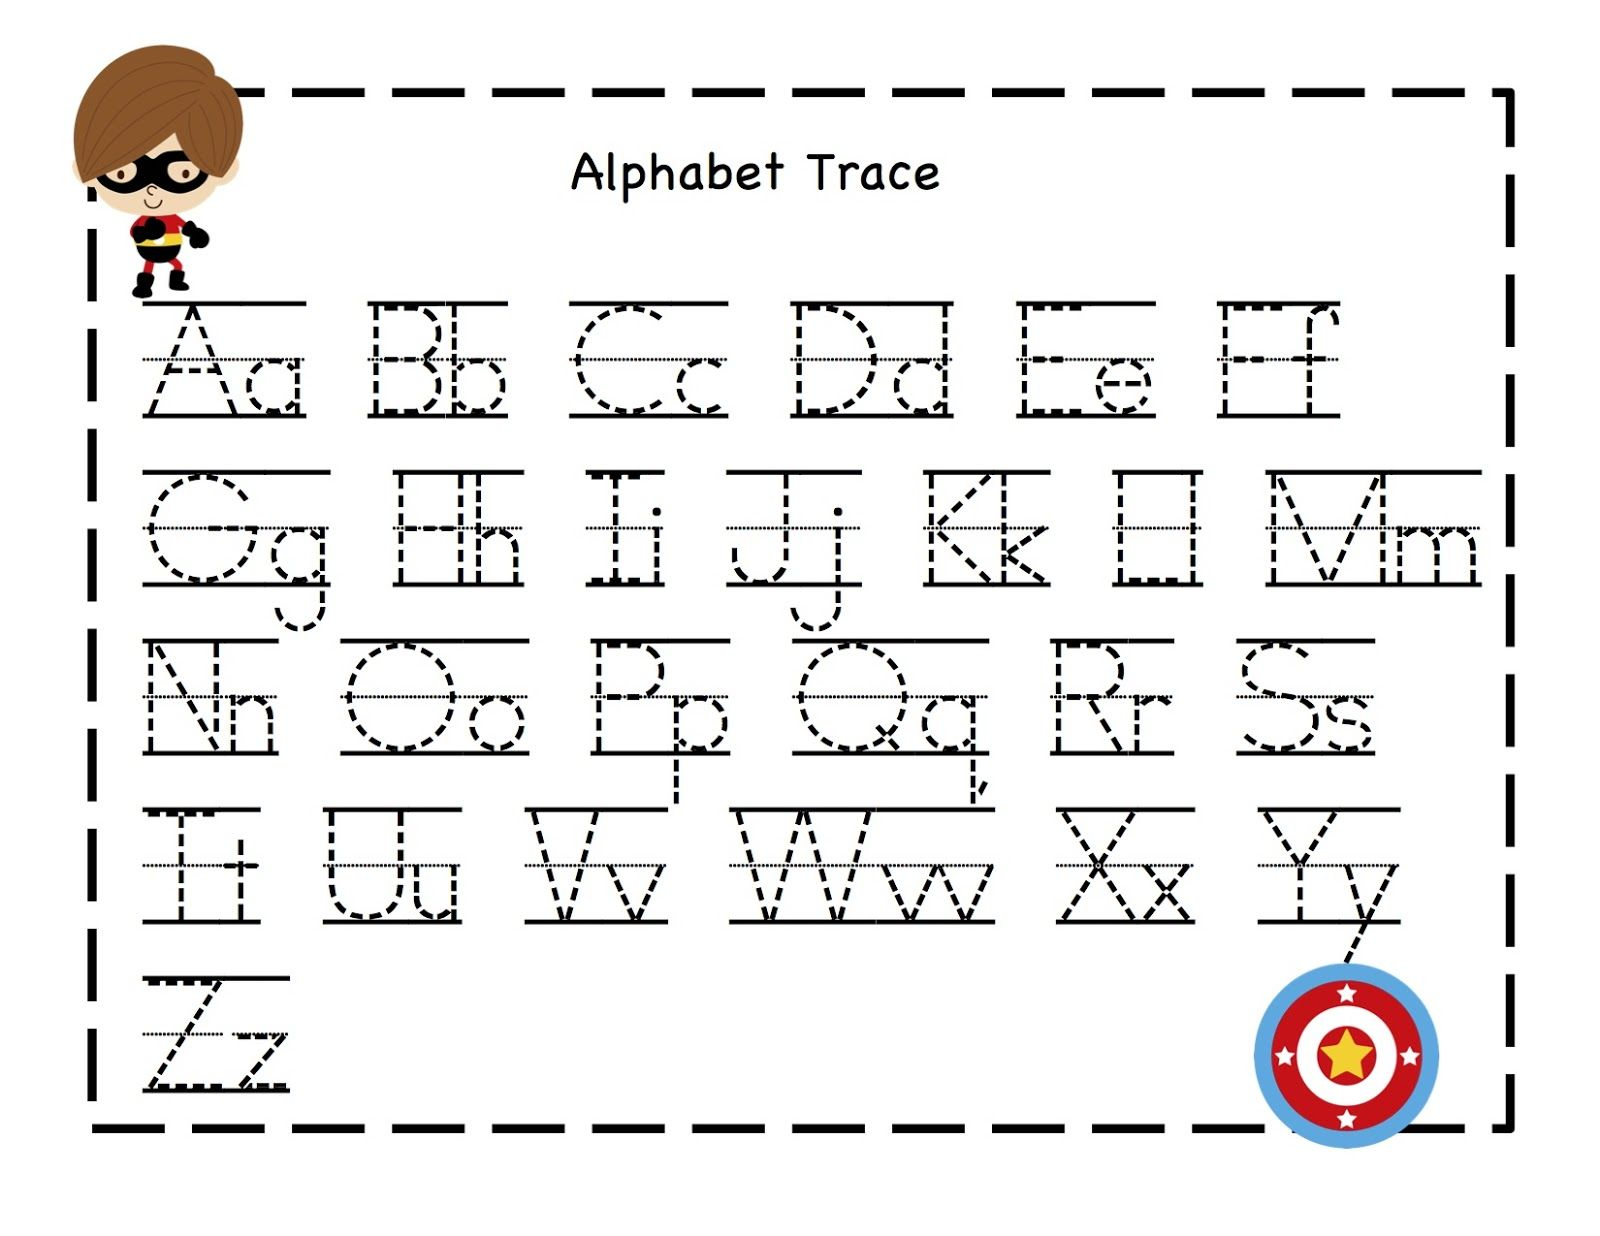 Worksheets Pre K Alphabet Tracing Worksheets abc tracing sheets for preschool kids kiddo shelter worksheets